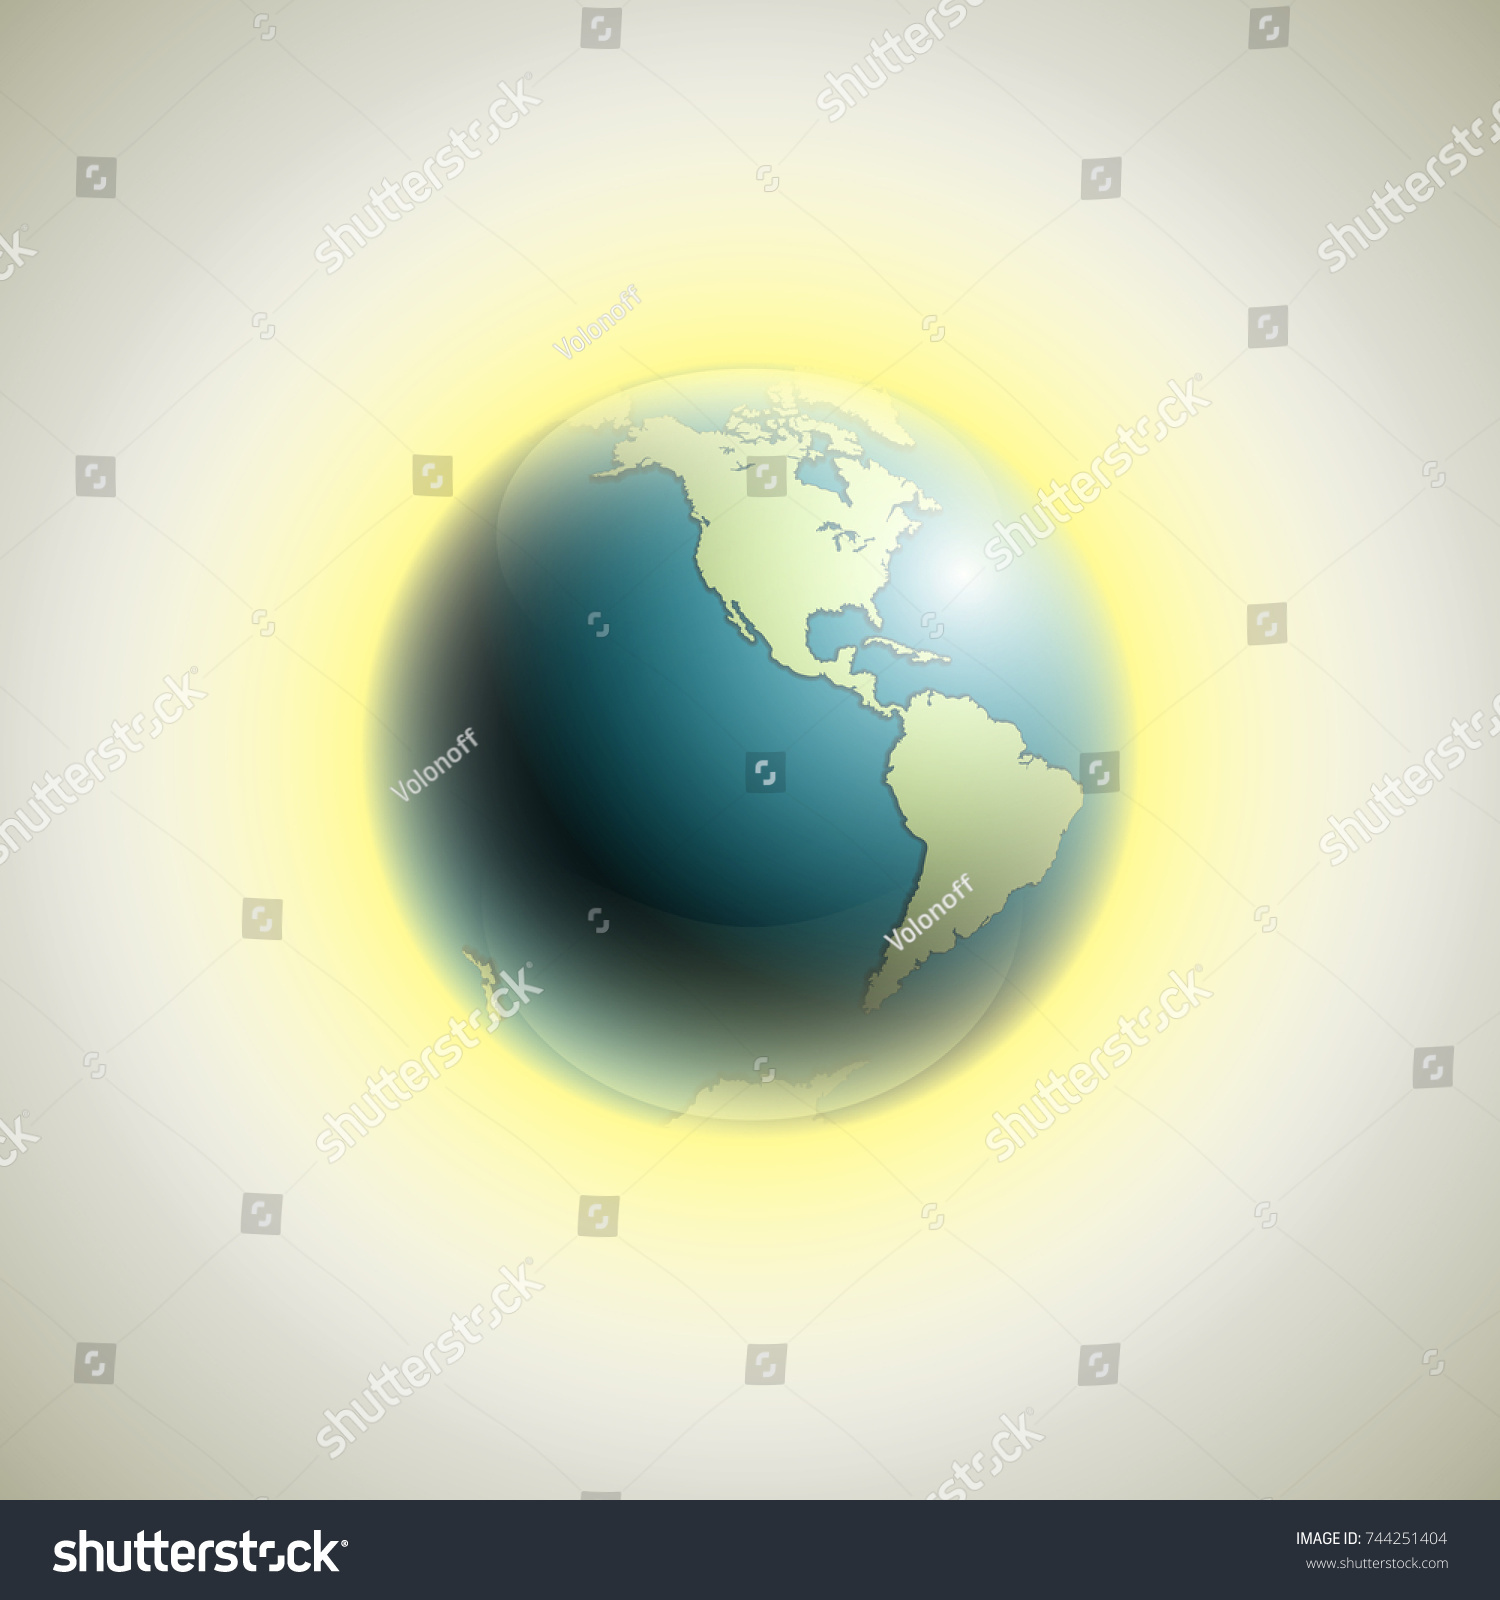 World map rising sun banner globe stock vector 744251404 shutterstock world map with rising sun banner globe icon in space sunlight poster planet earth gumiabroncs